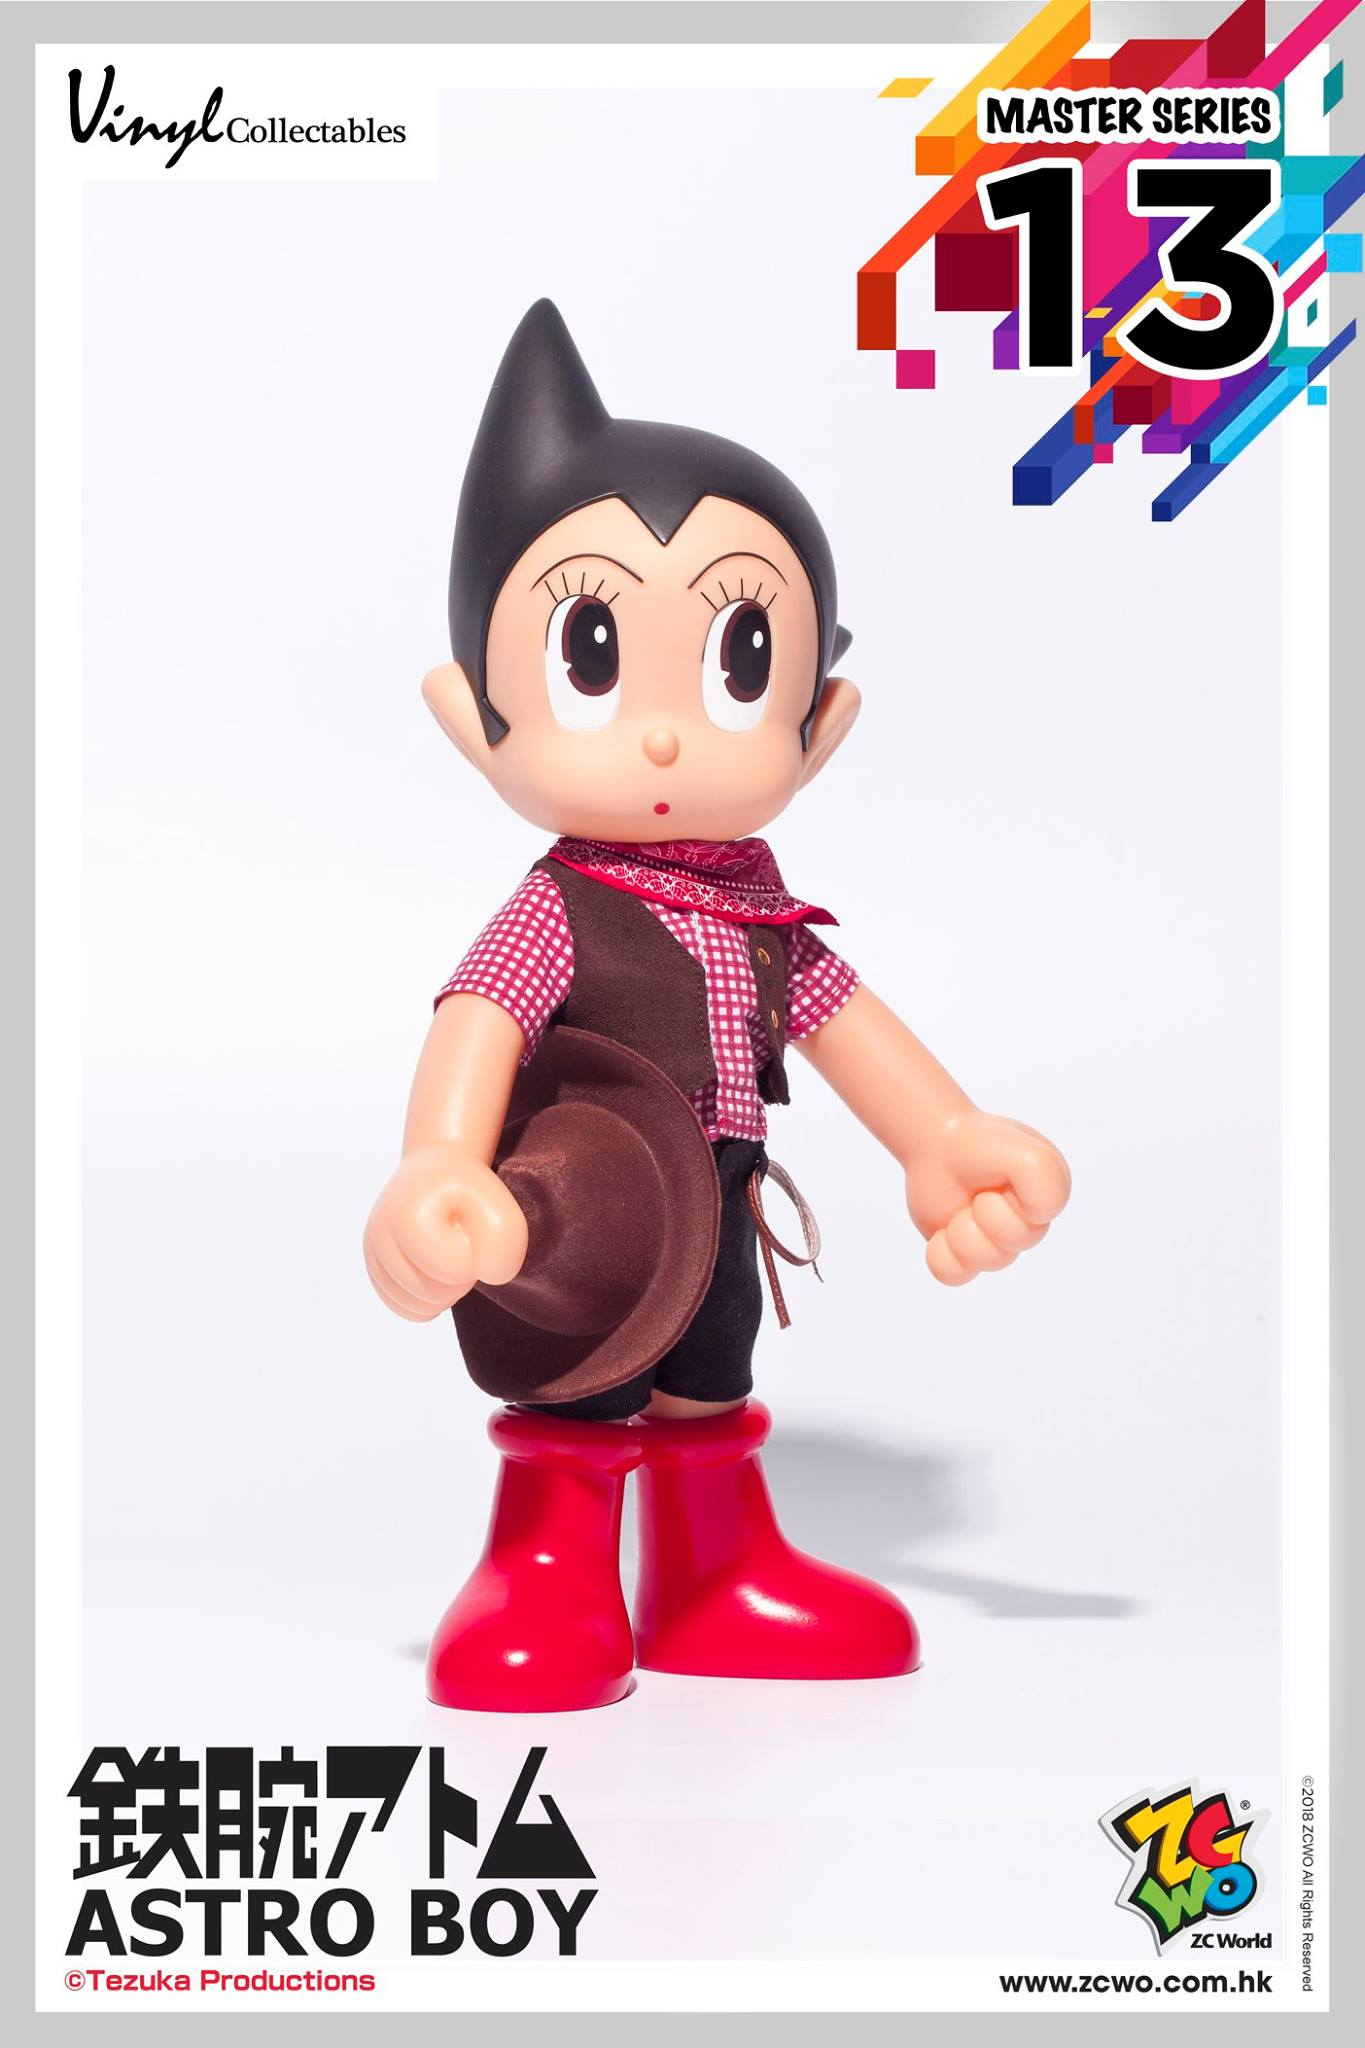 ZC World - Vinyl Collectibles - Master Series 13 - Astro Boy (Limited Edition)